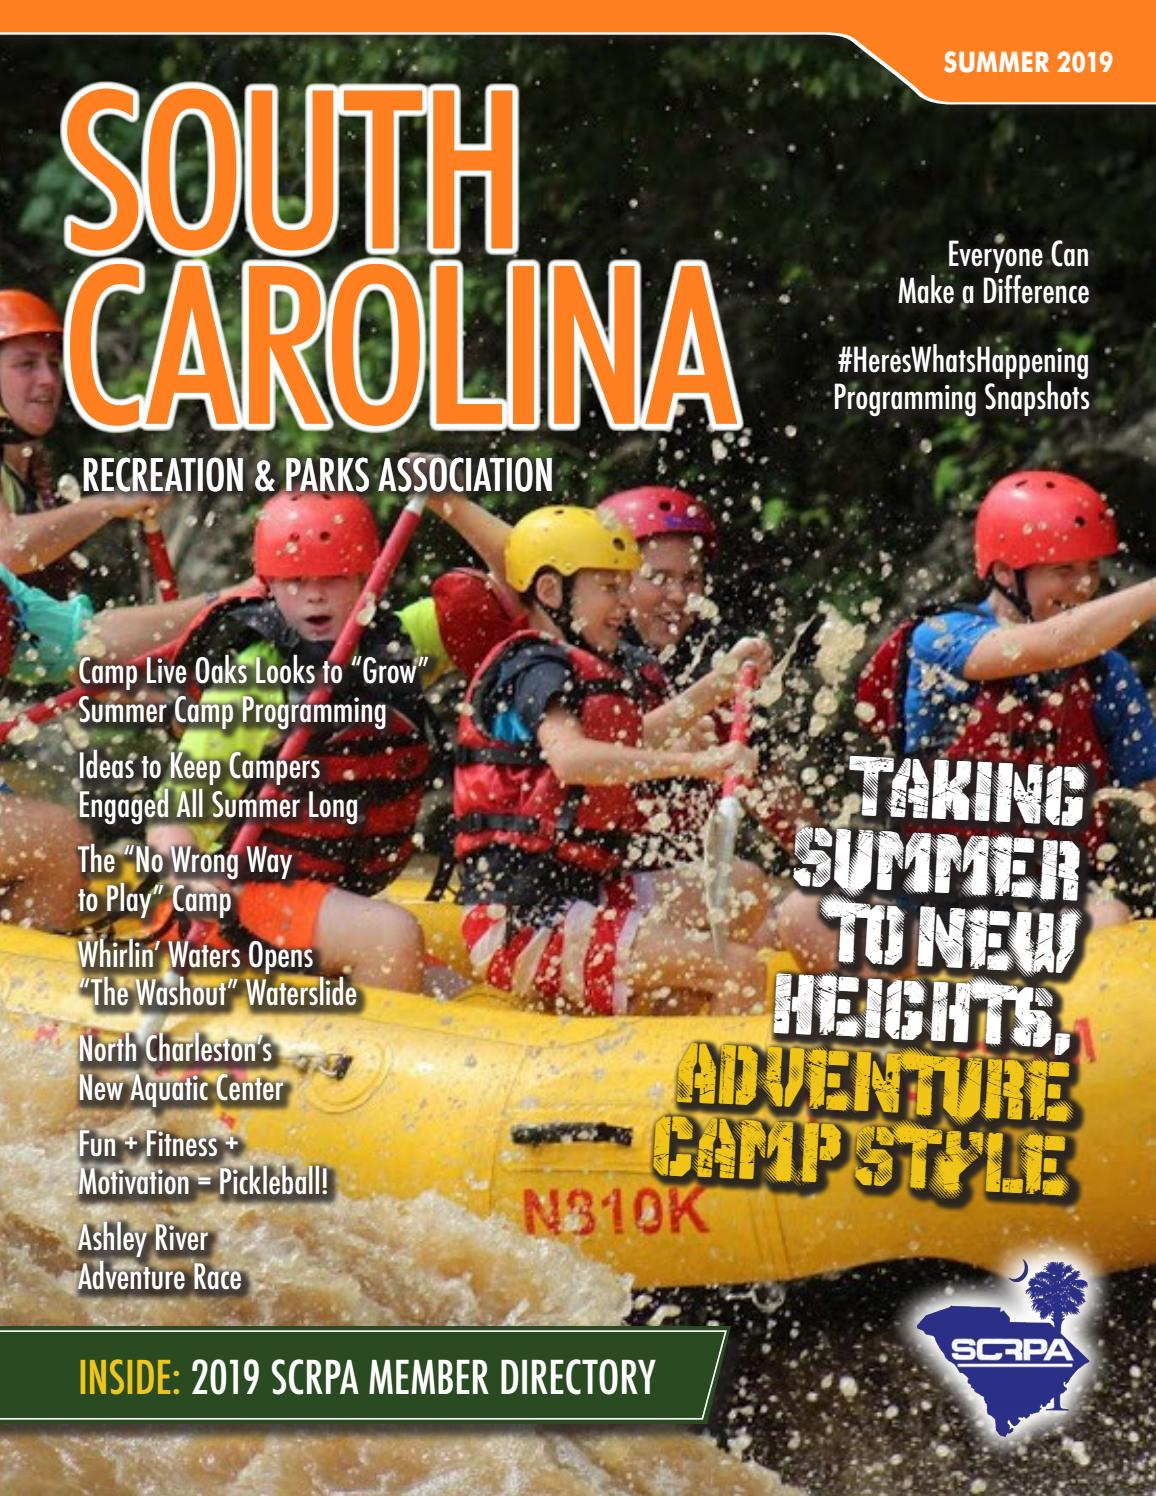 South Carolina Recreation Park Magazine Summer 2019 By Pernsteiner